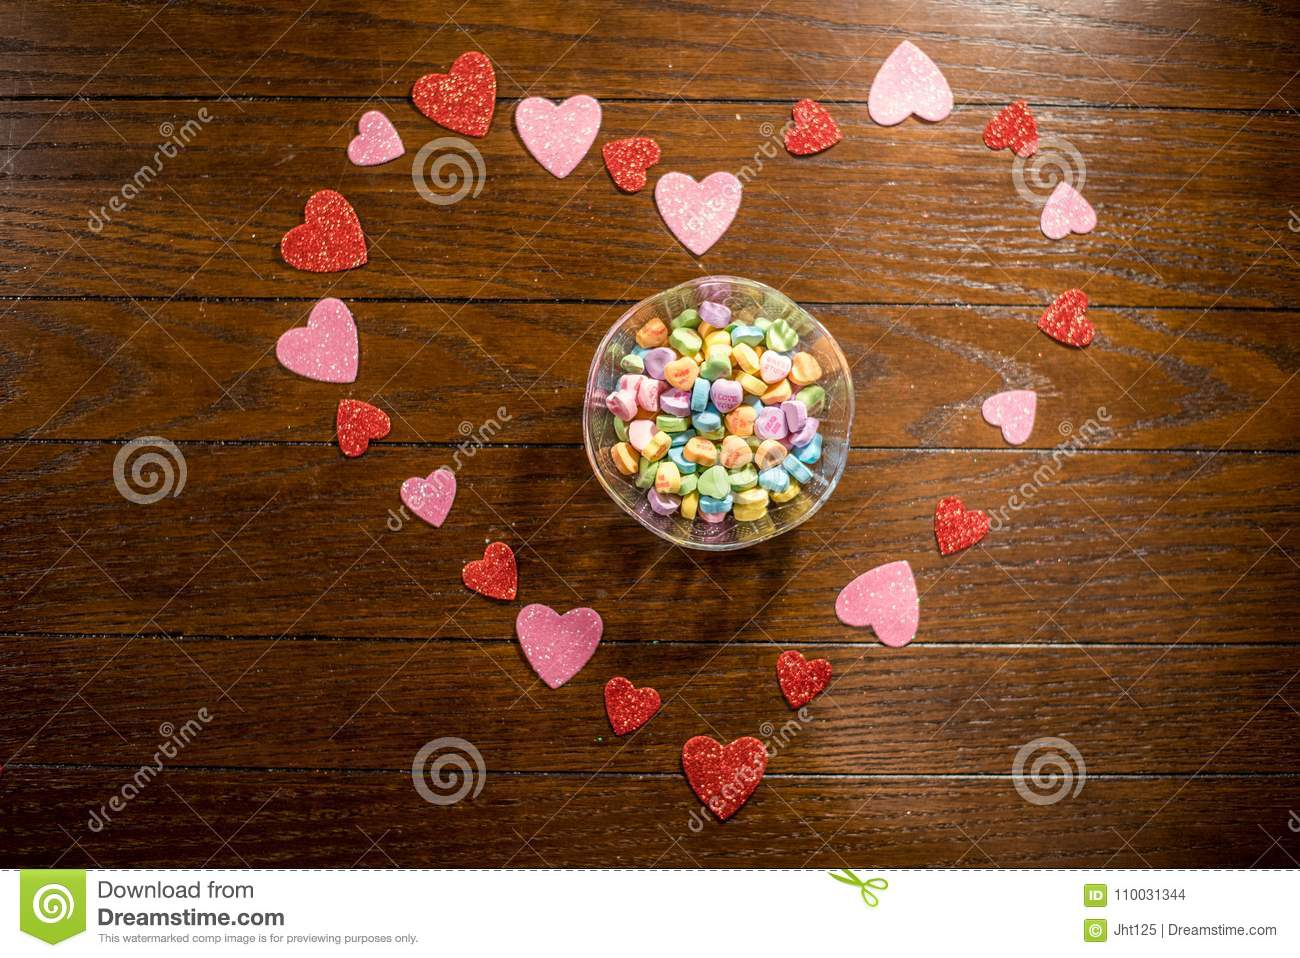 Valentines Heart and Sweet Heart Candies